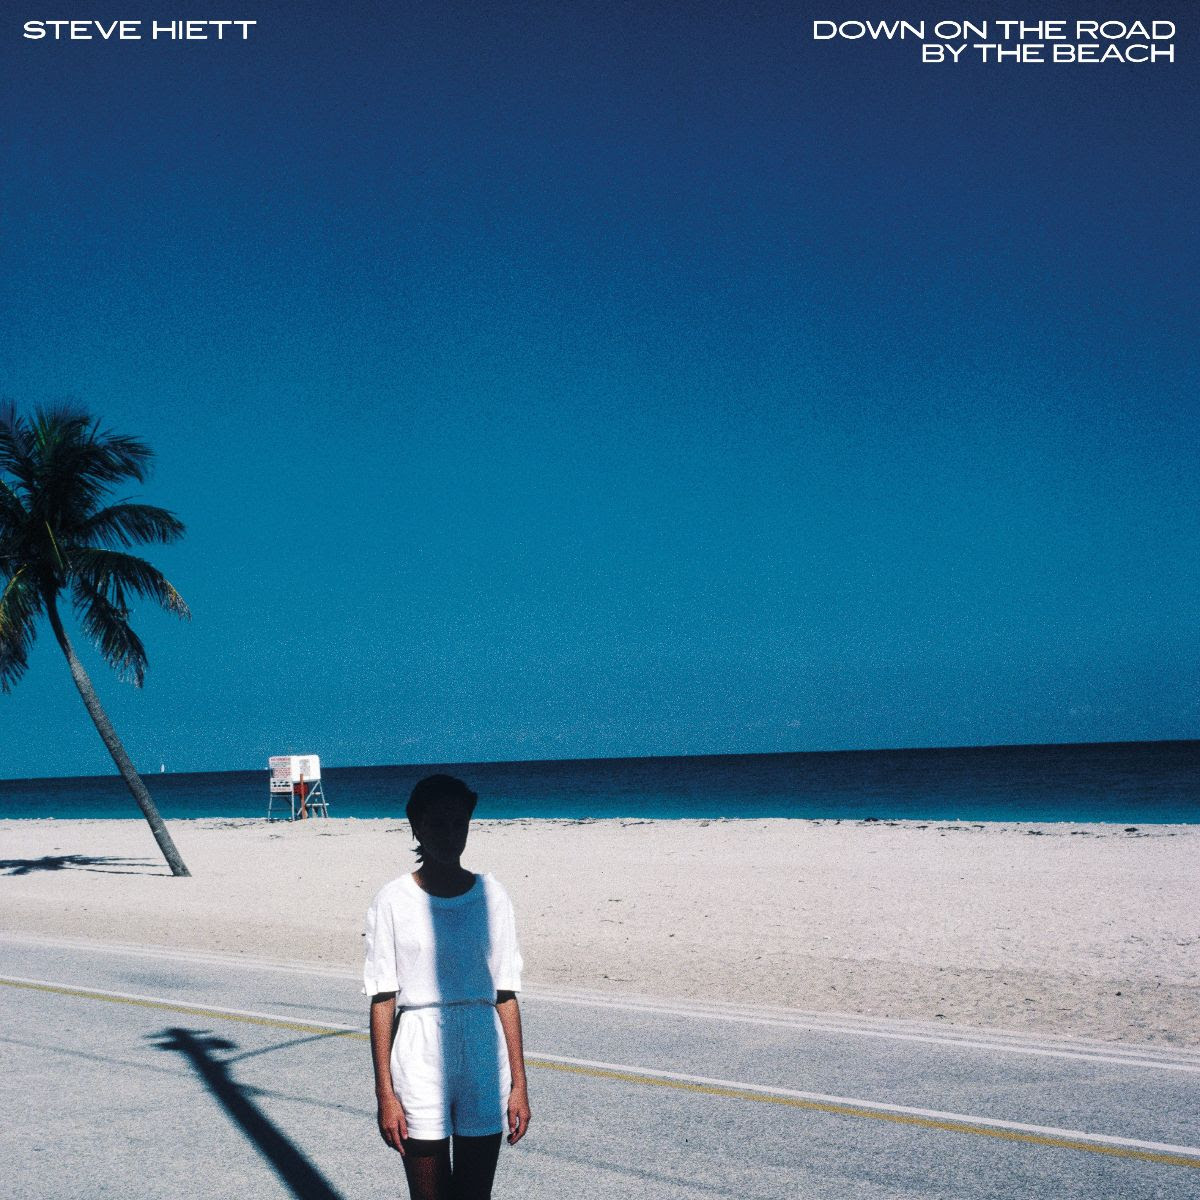 Steve Hiett's sought-after Down On The Road By The Beach reissued for the first time